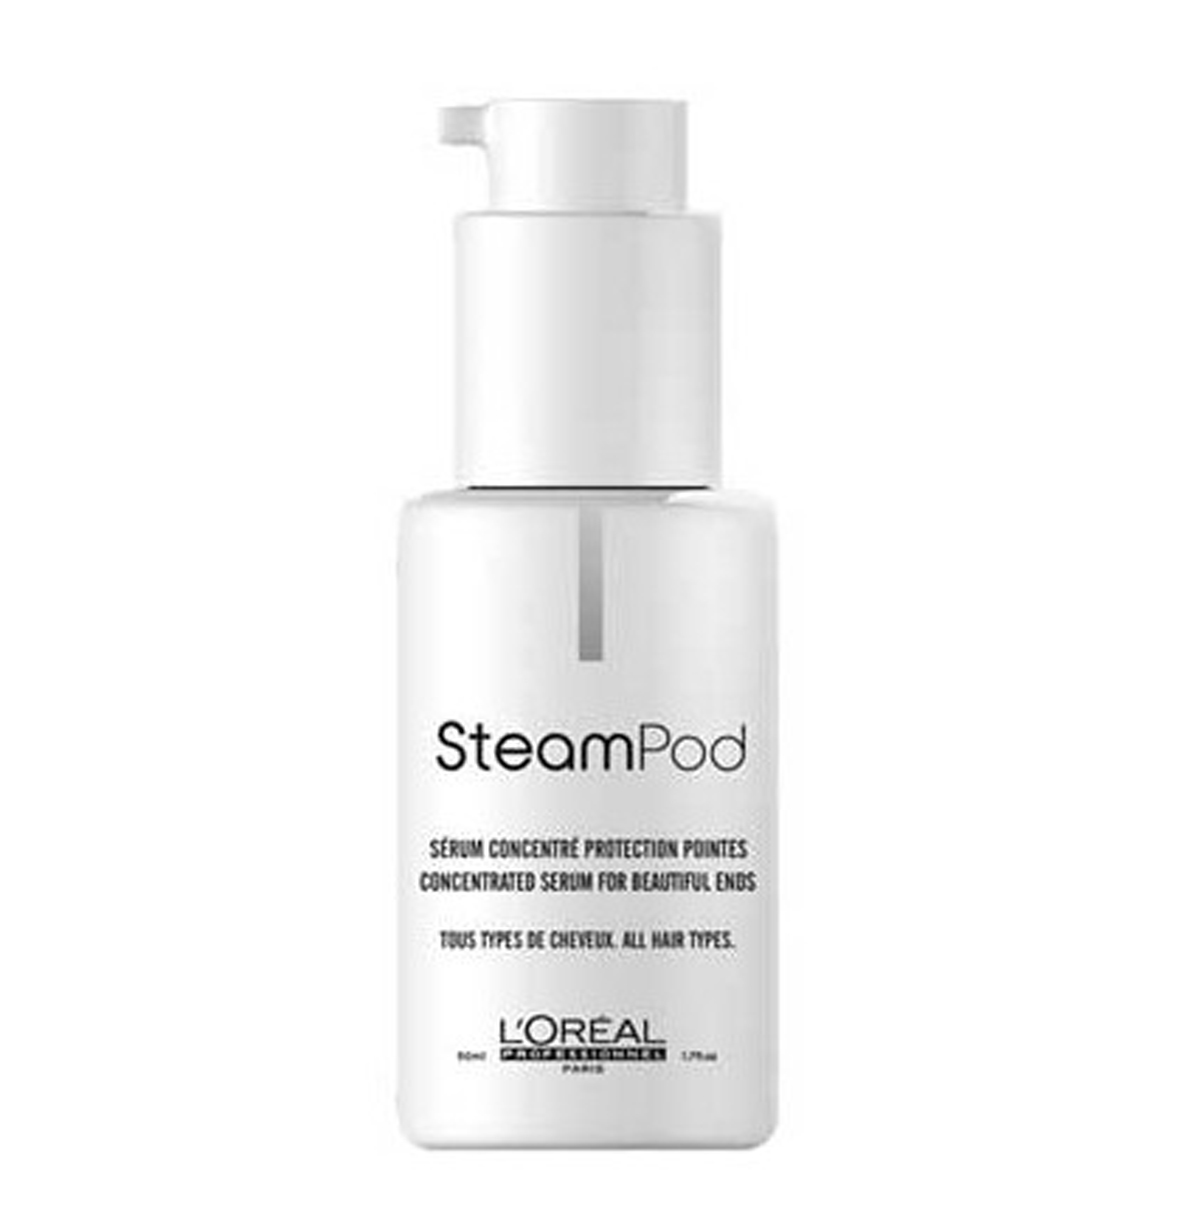 L'Oréal SteamPod Finish Serum - uhlazující sérum, 50 ml